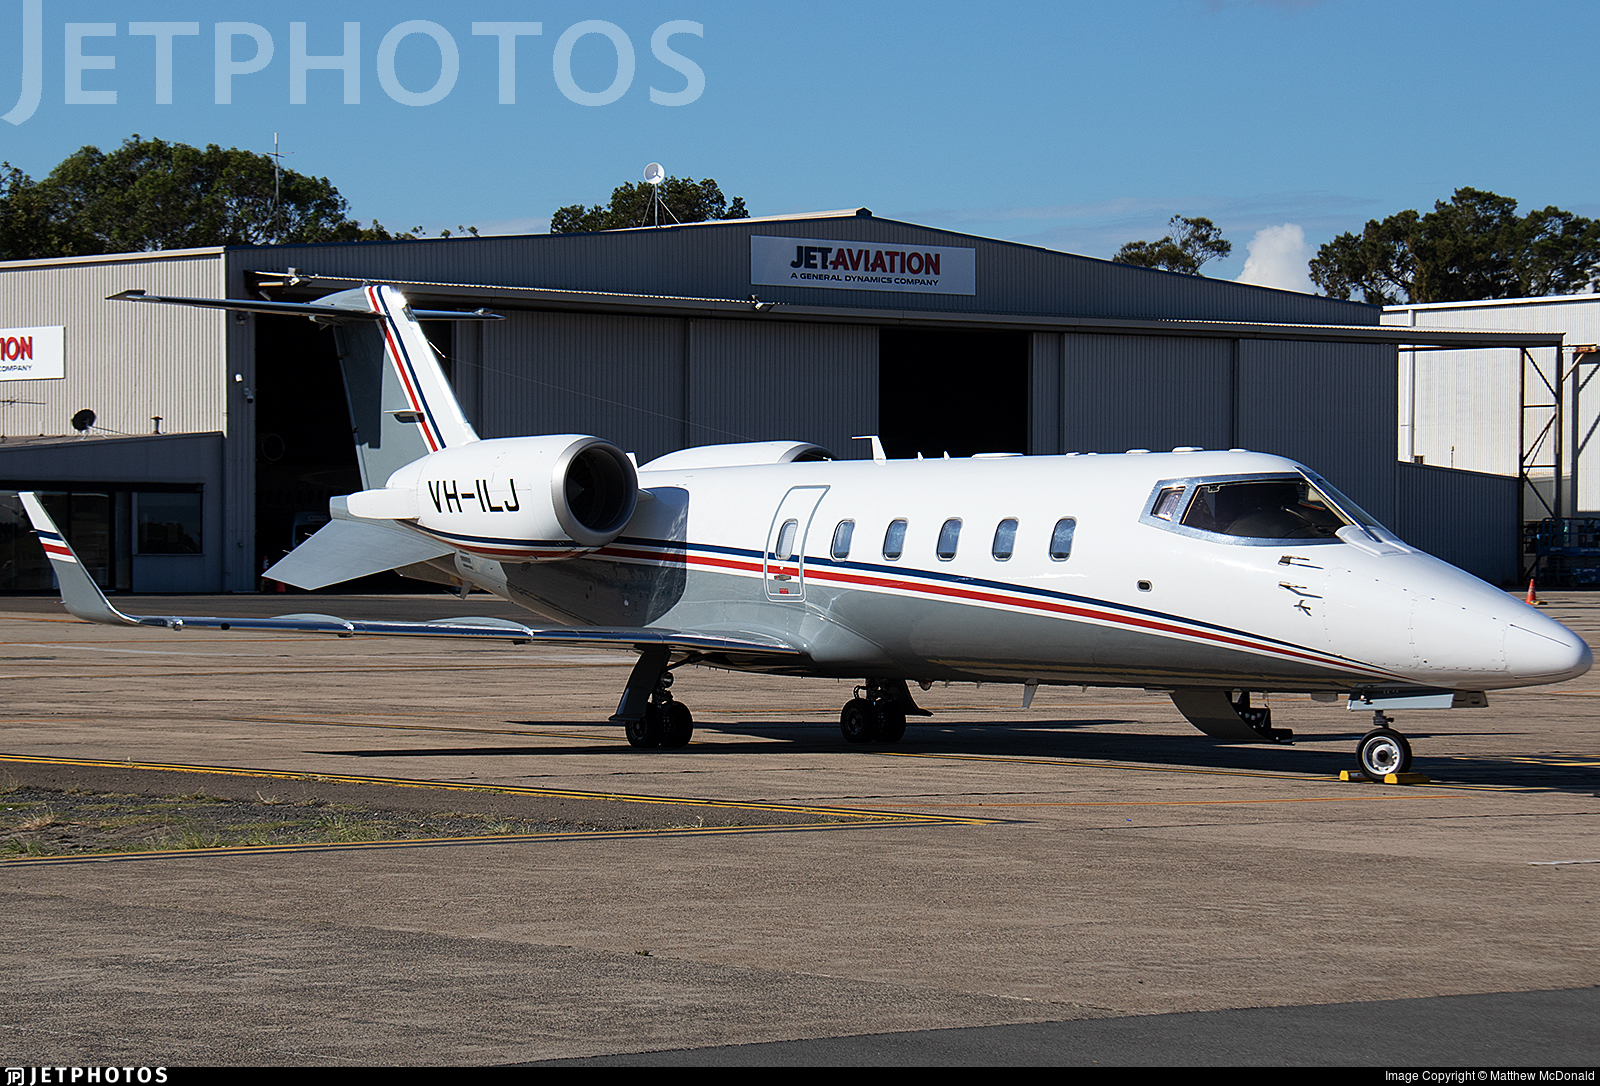 VH-ILJ - Bombardier Learjet 60 - Private